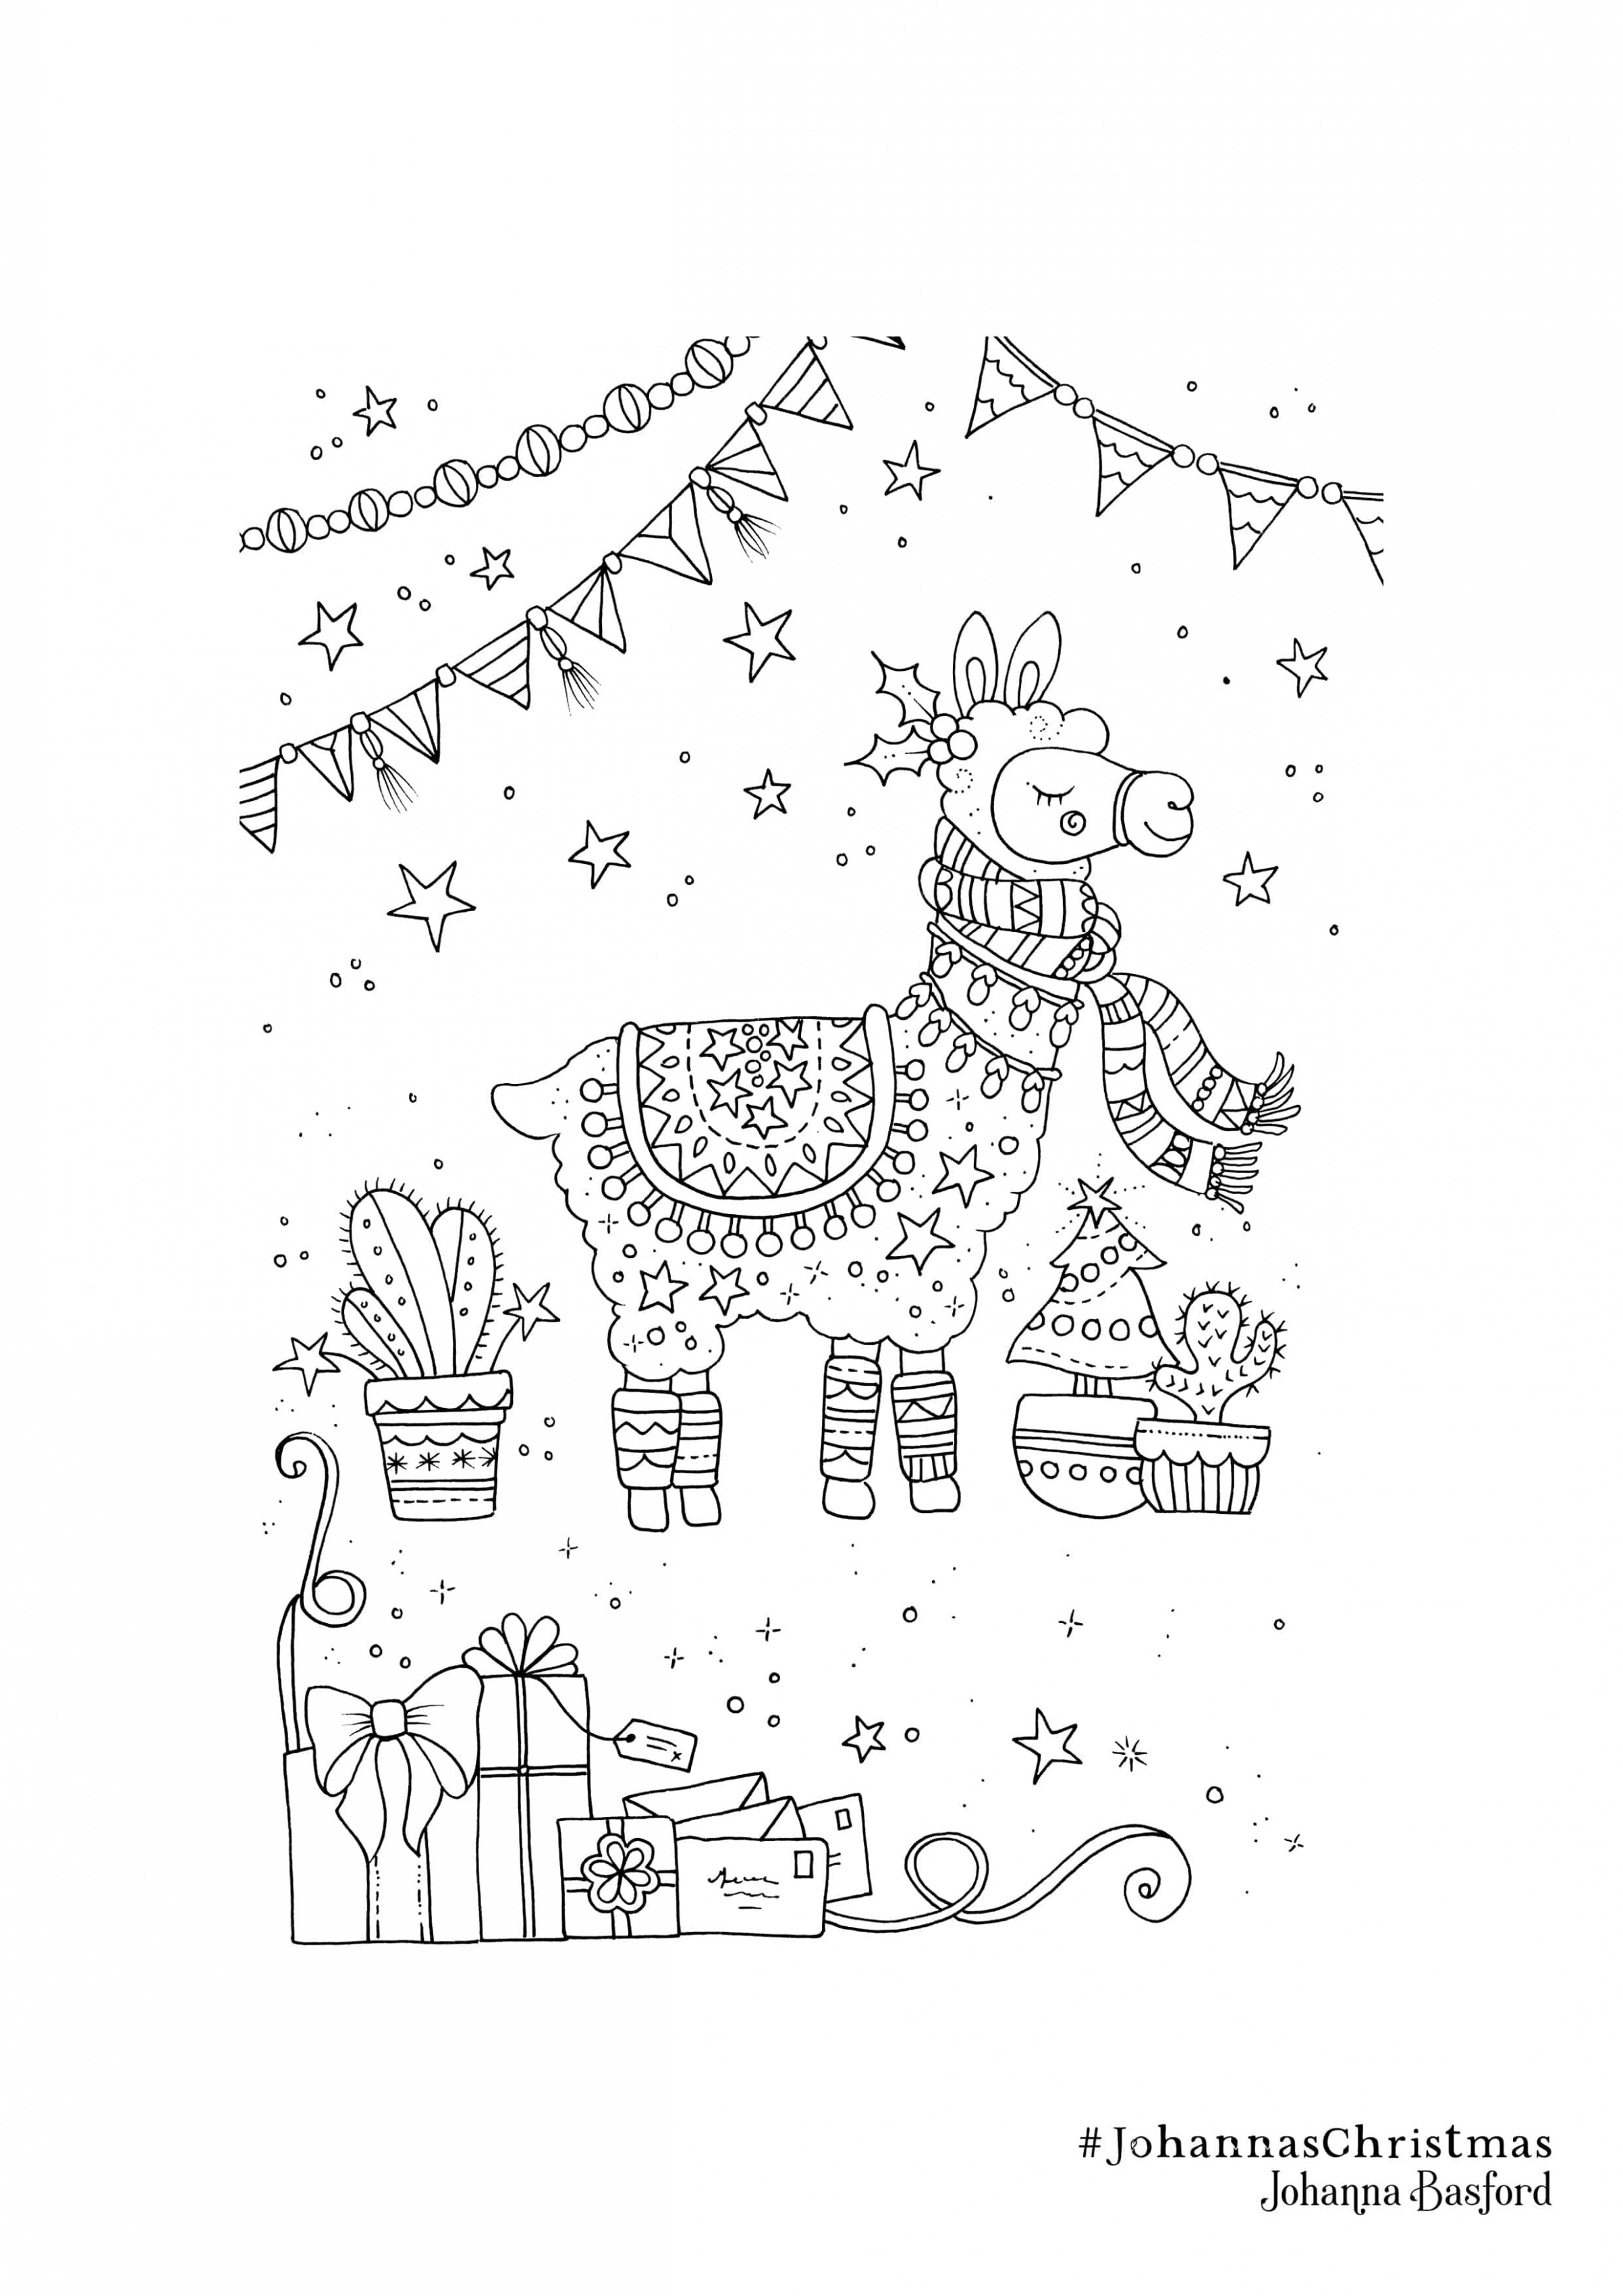 Christmas Colouring Downloads – Johanna Basford Johanna Basford – Christmas Coloring Downloads